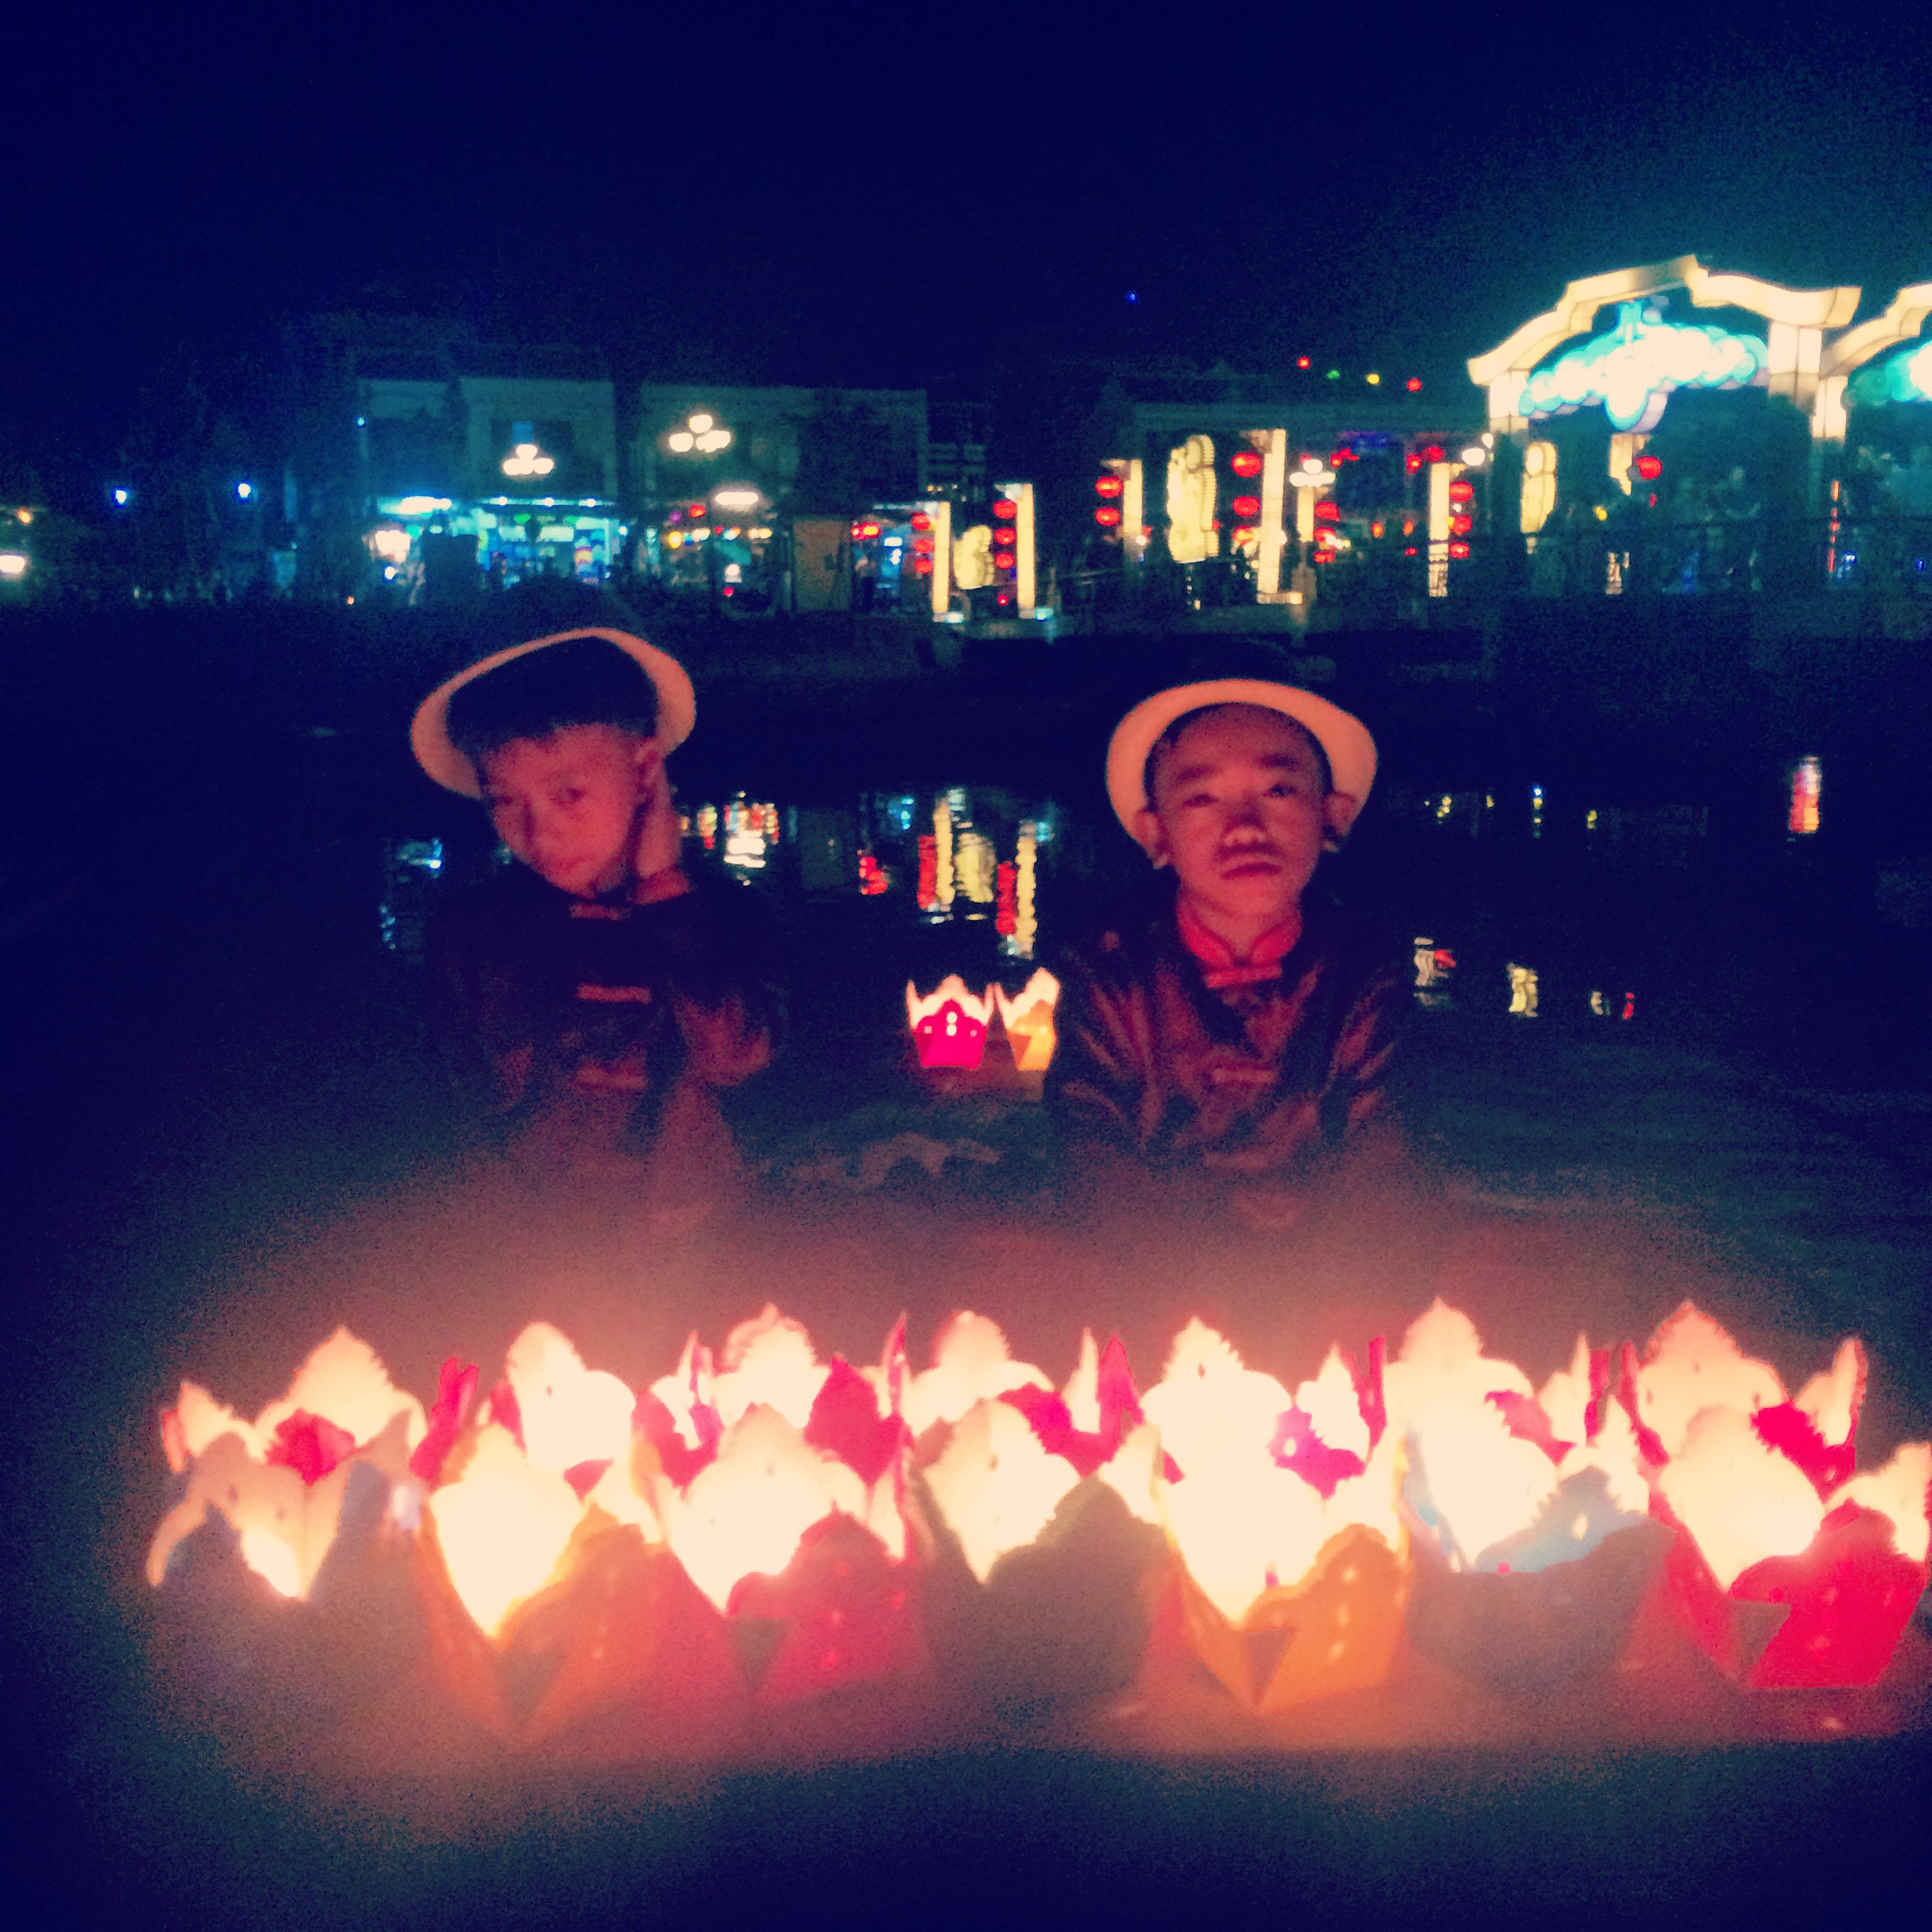 viet boyz and lanterns